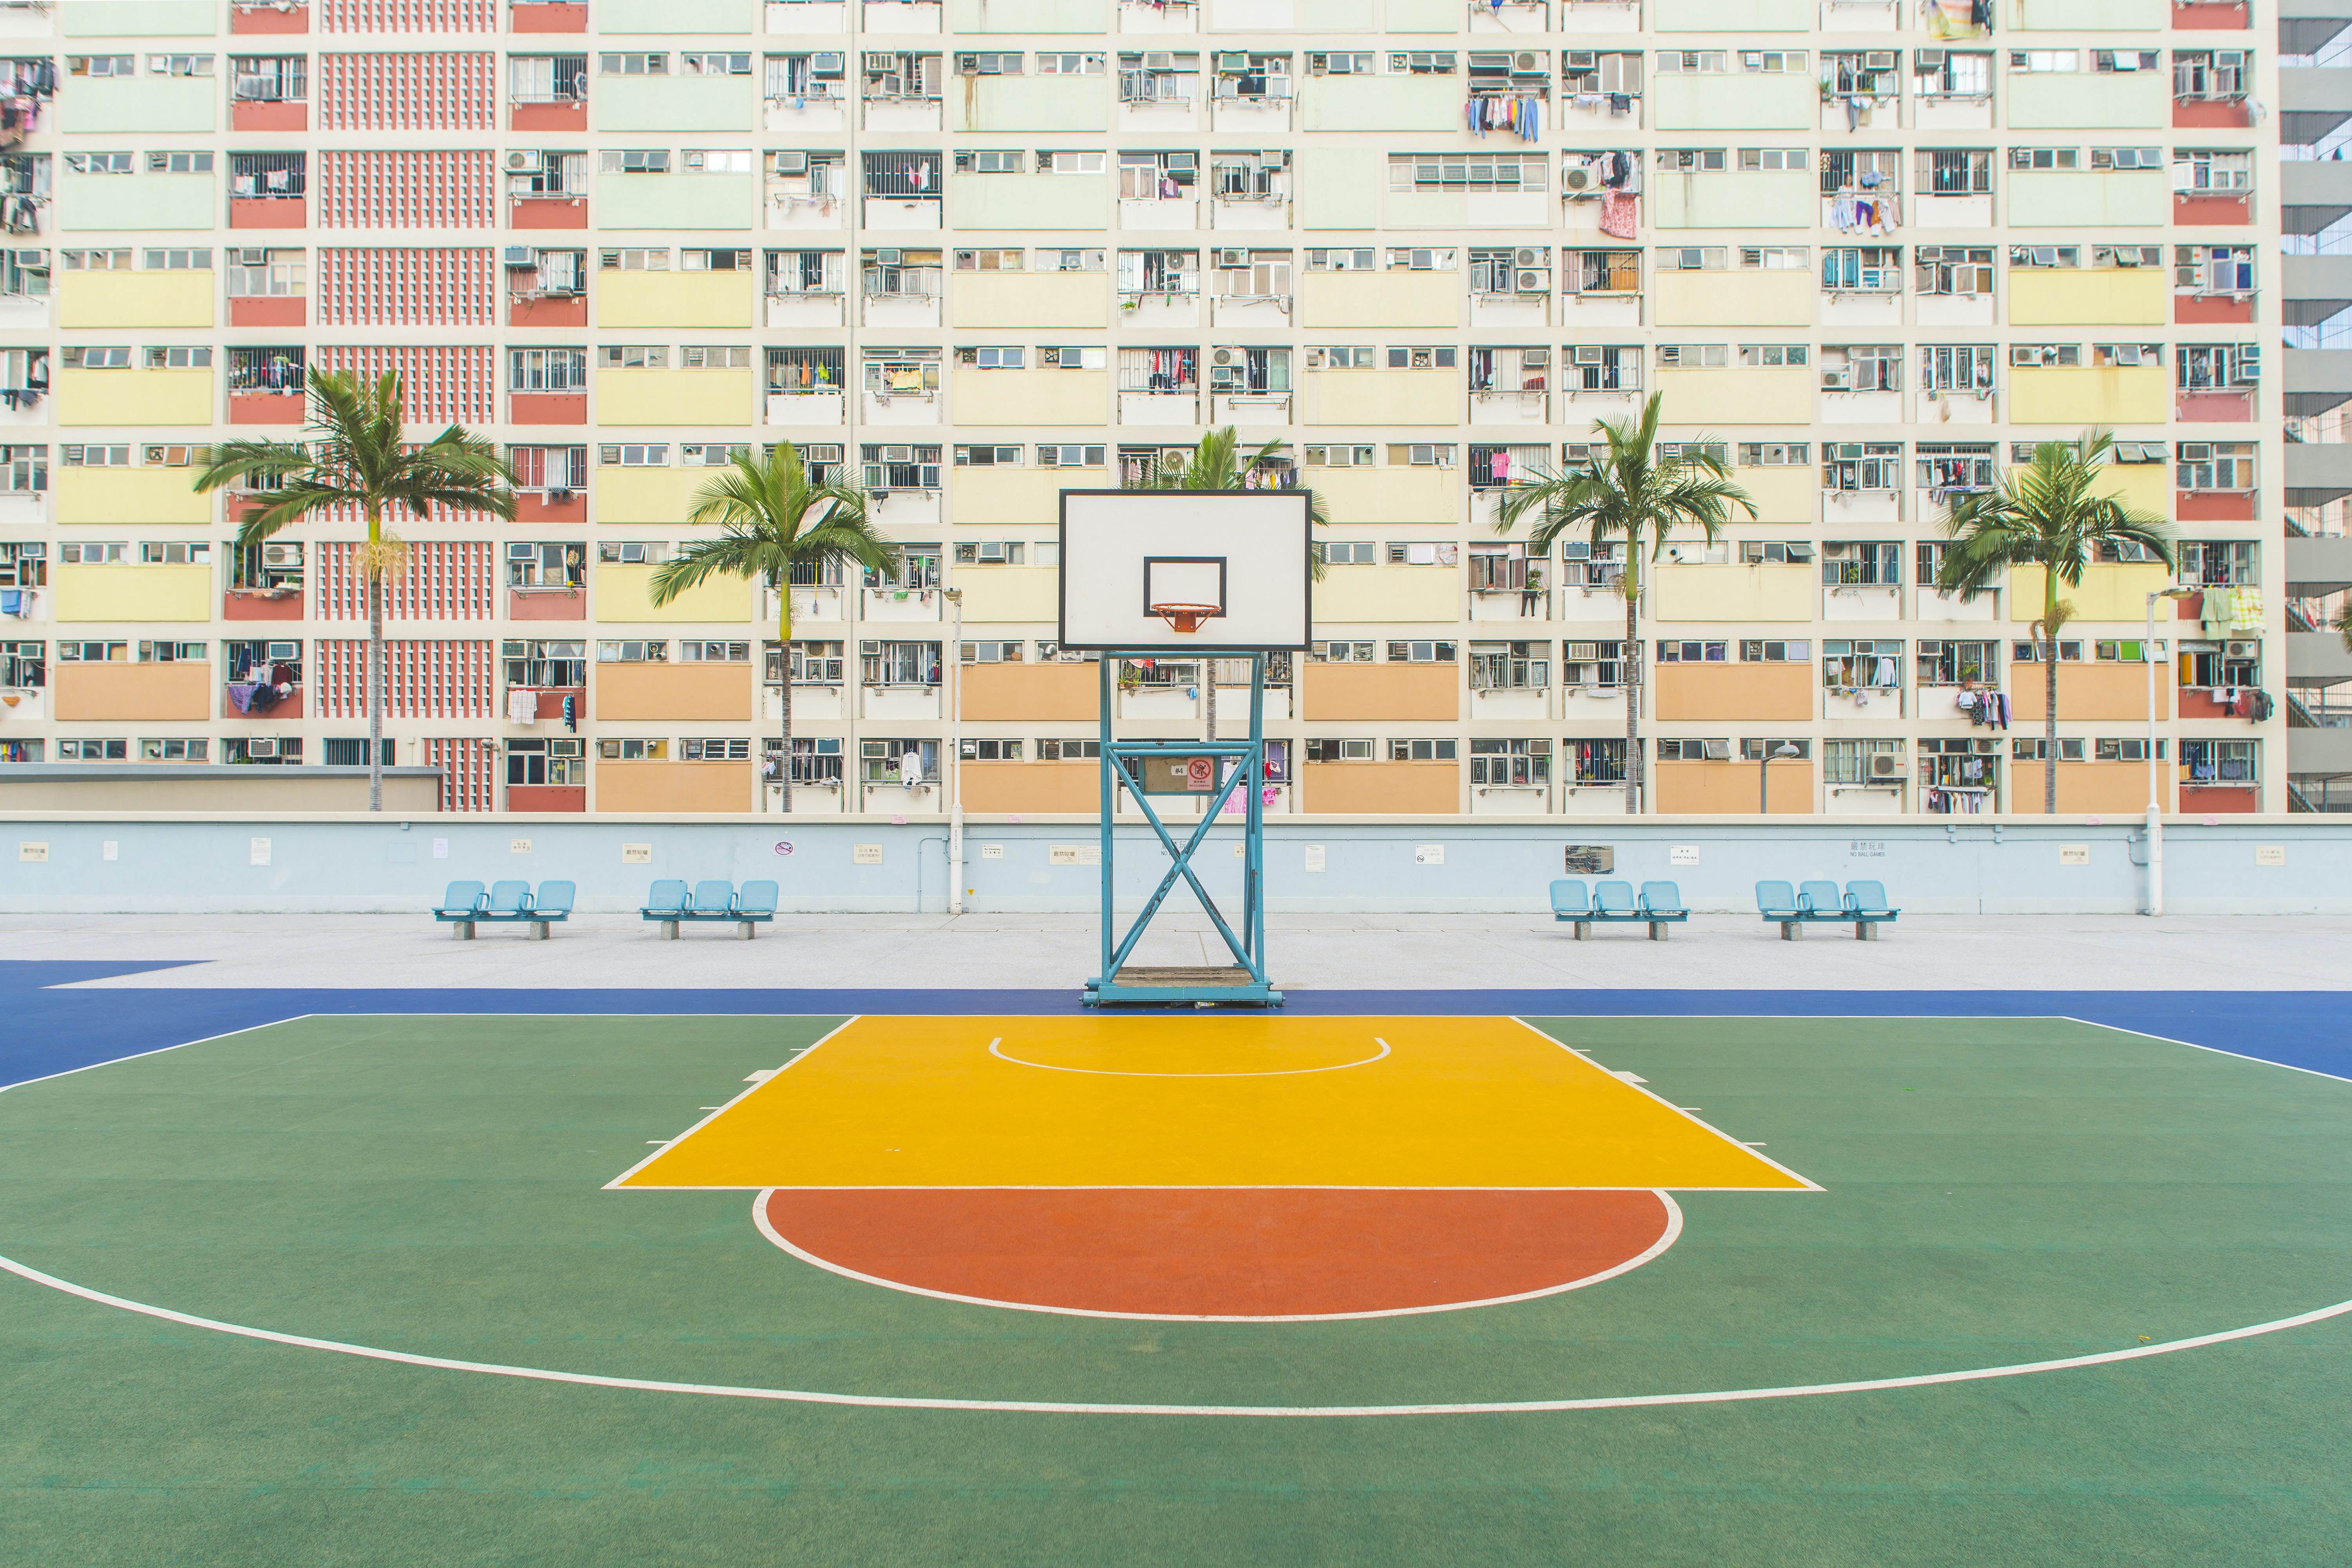 basketball gym near concrete building